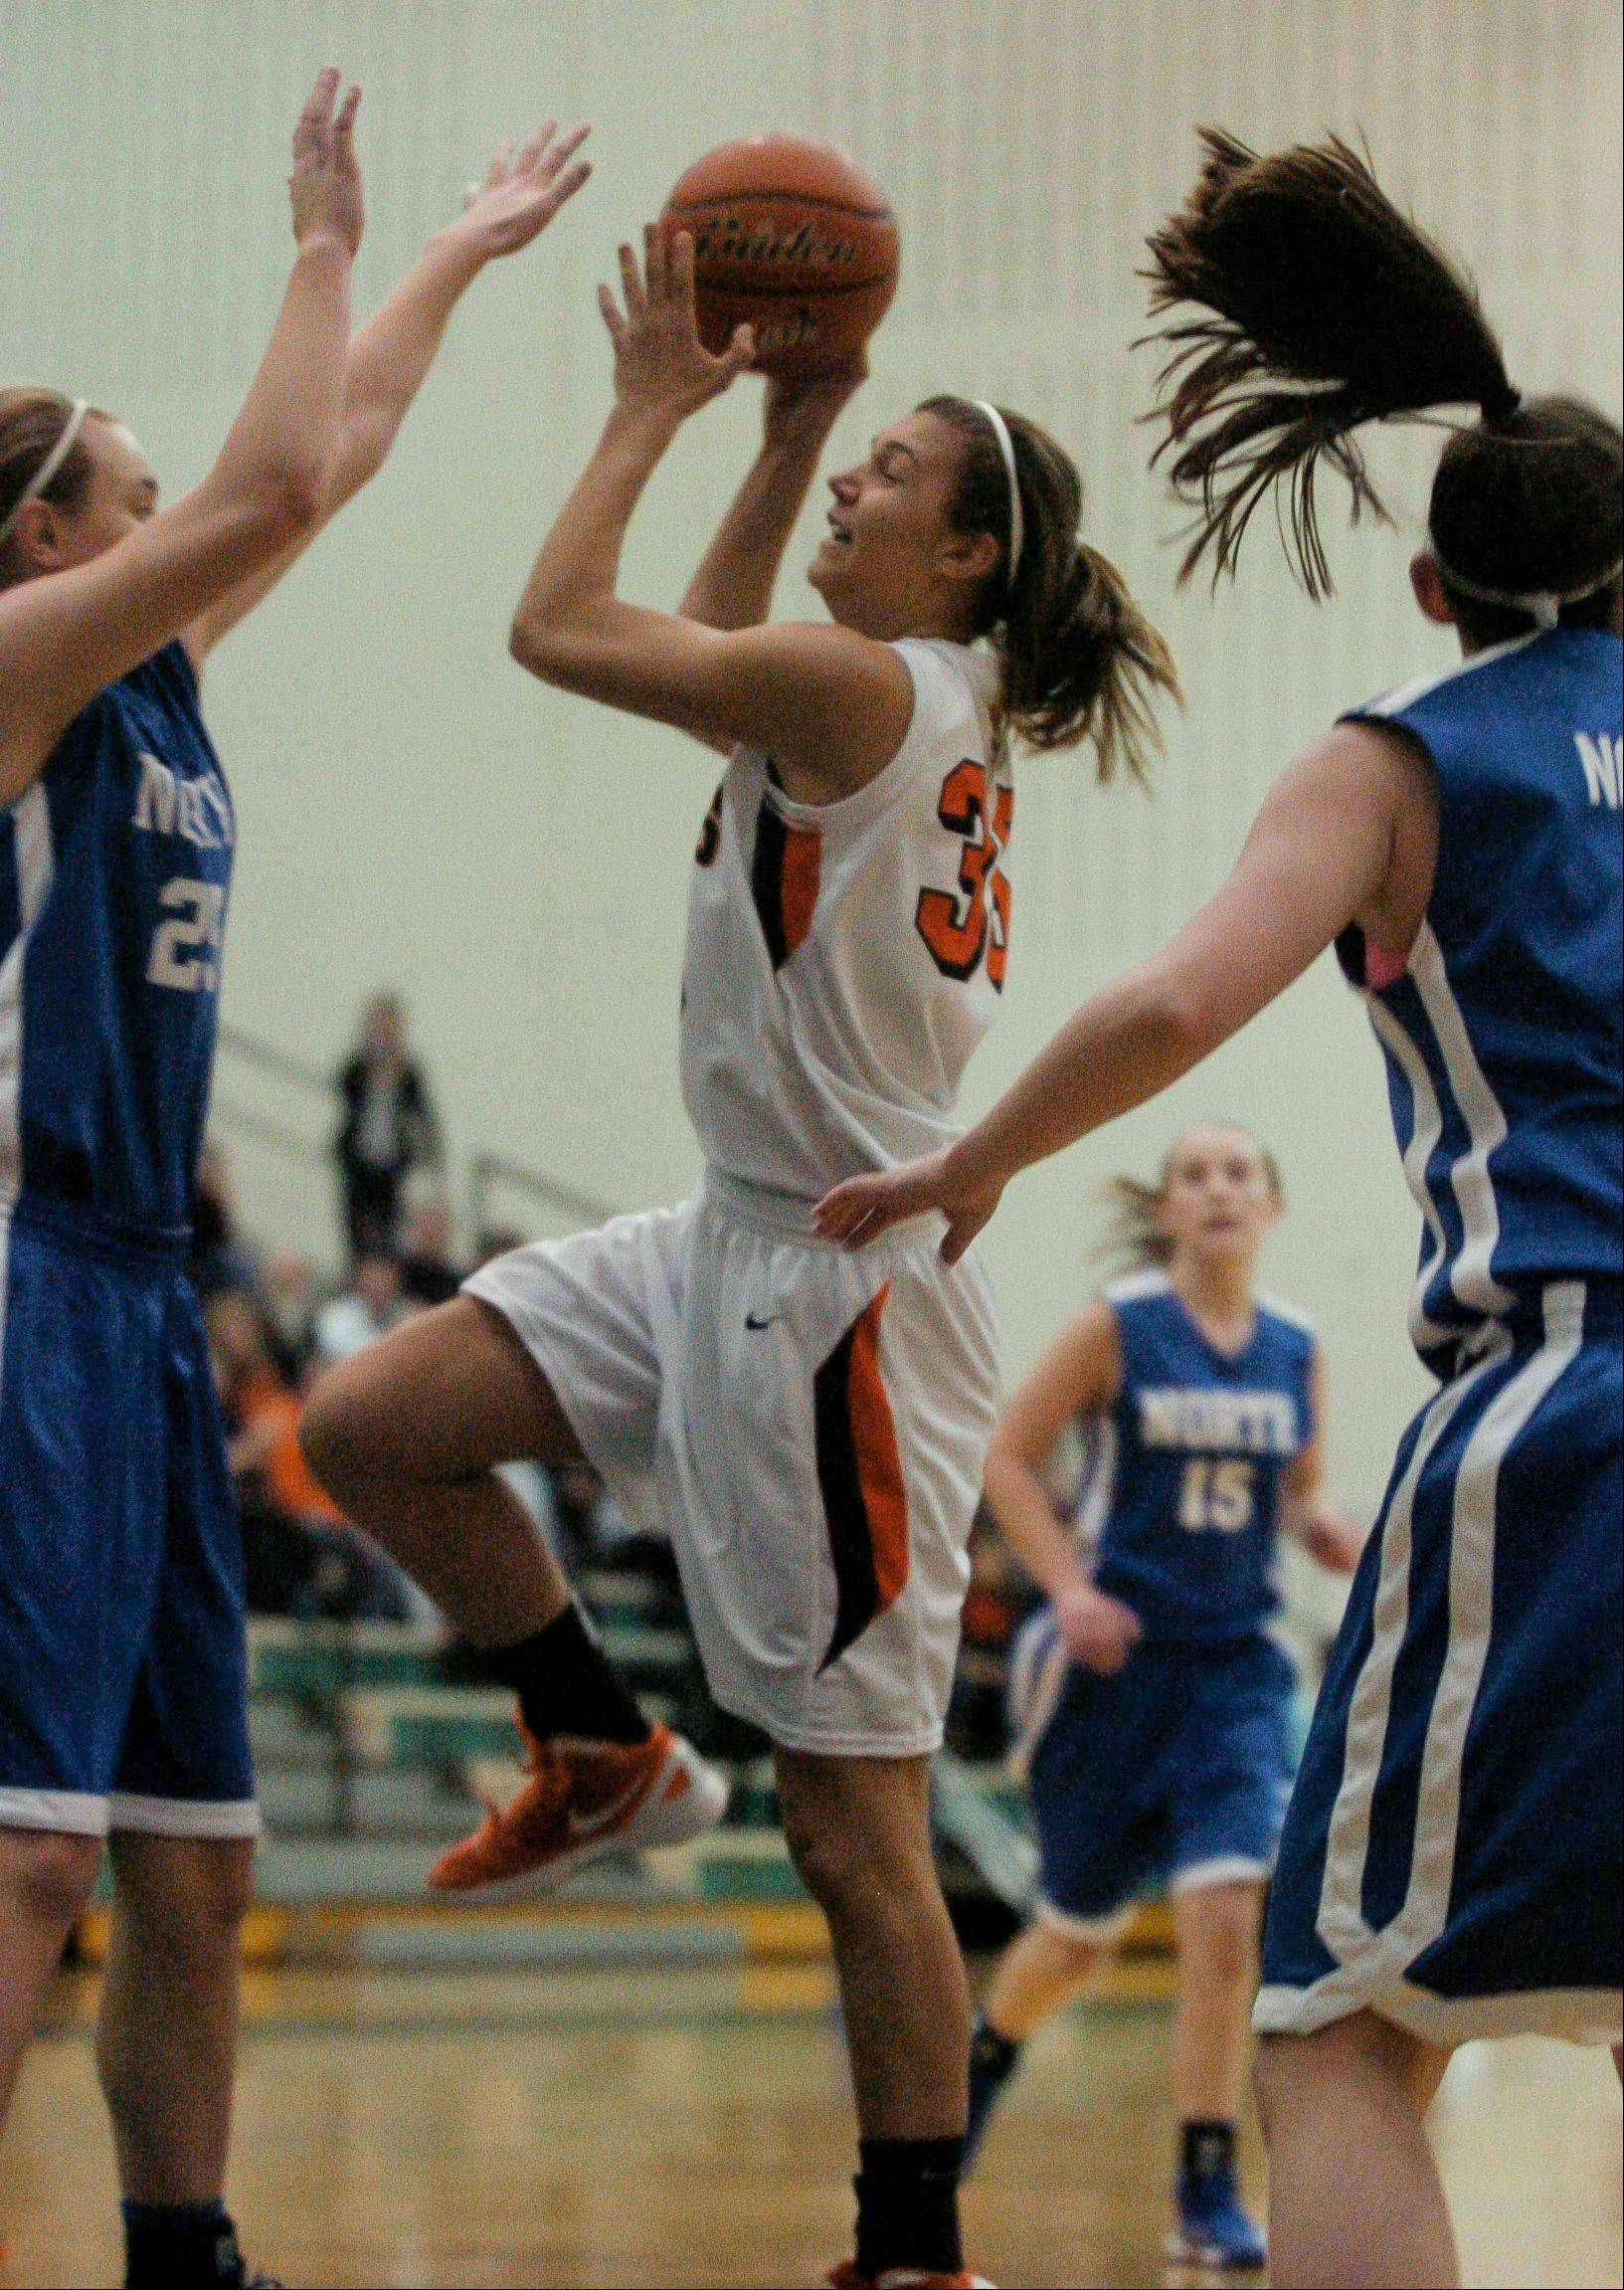 Alyssa Zappia of Wheaton Warrenville South goes up for a shot against Wheaton North.